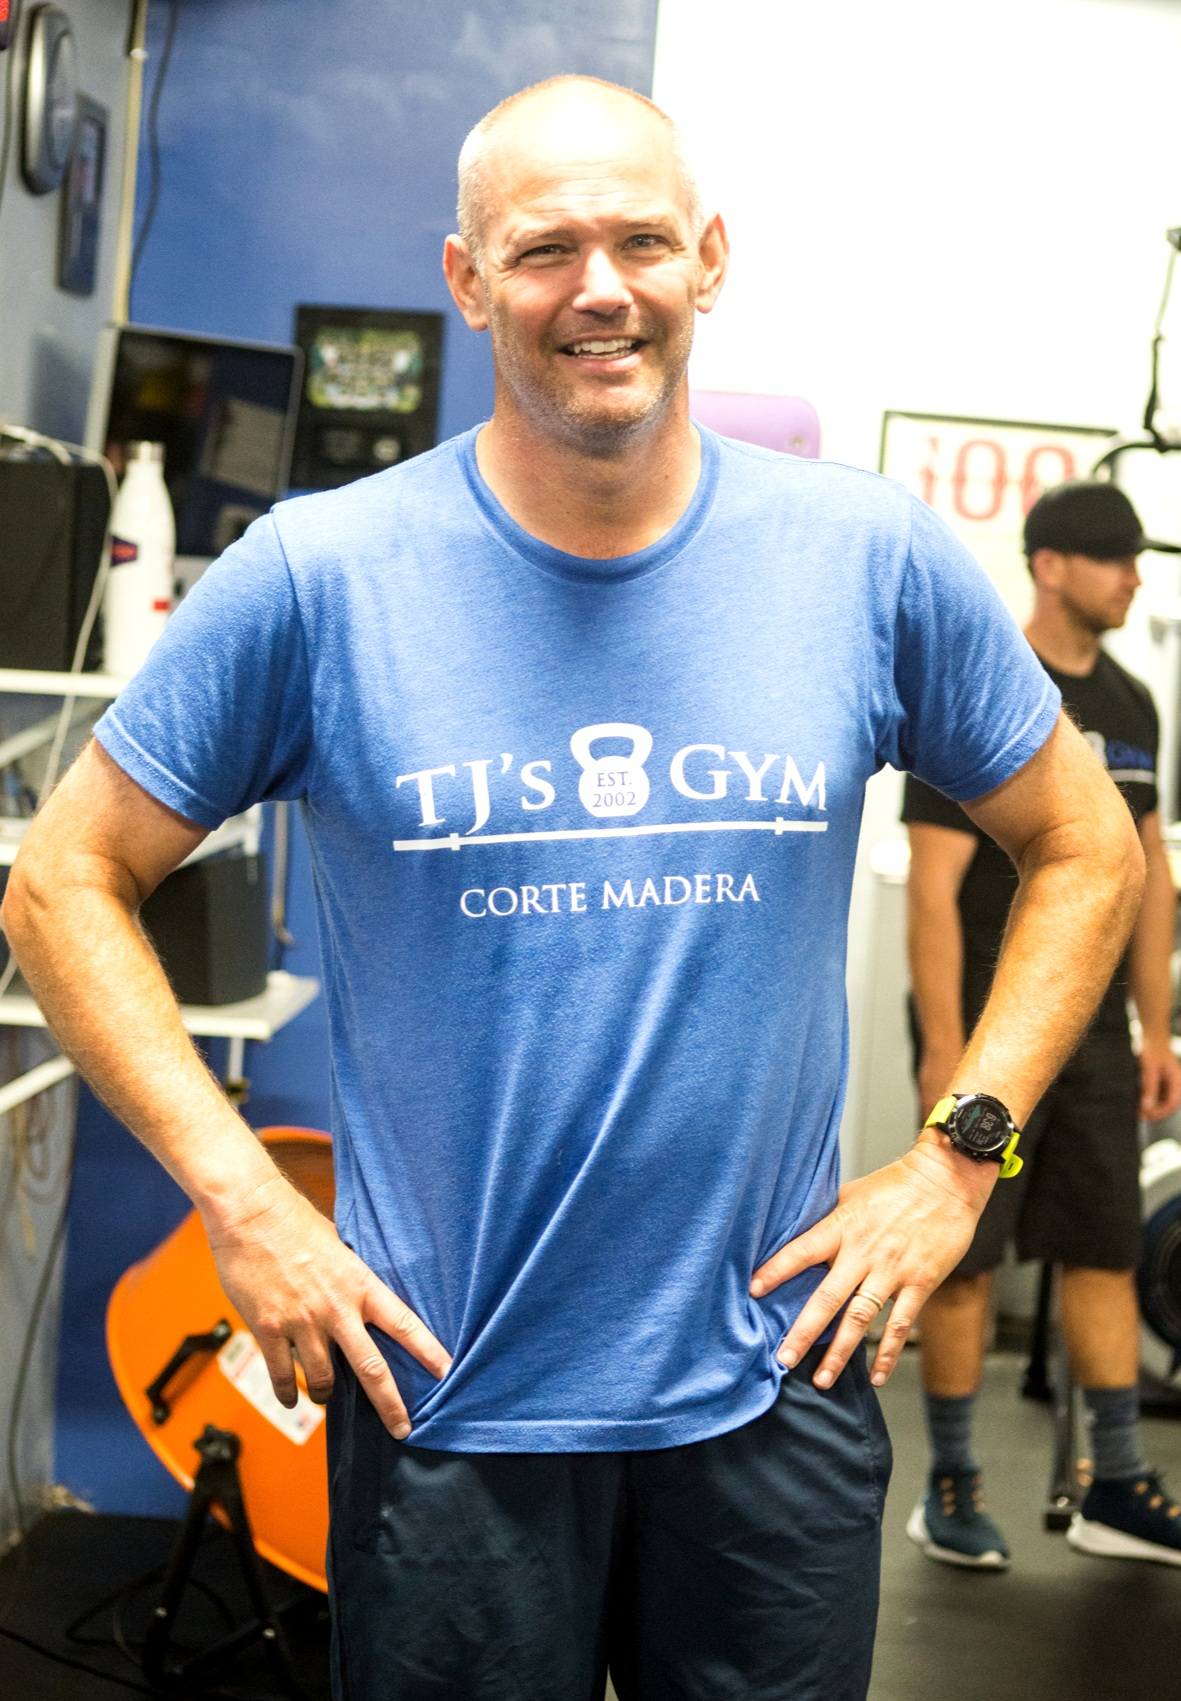 One of the good ones. - Shout out to Dr. Andy, who has been coming to the Corte Madera and San Rafael gyms for years now. He's a super-accomplished, stand-up guy like so many in our midst, and he always makes his workouts happen, no matter the stressors in his life. Smart, smart man.